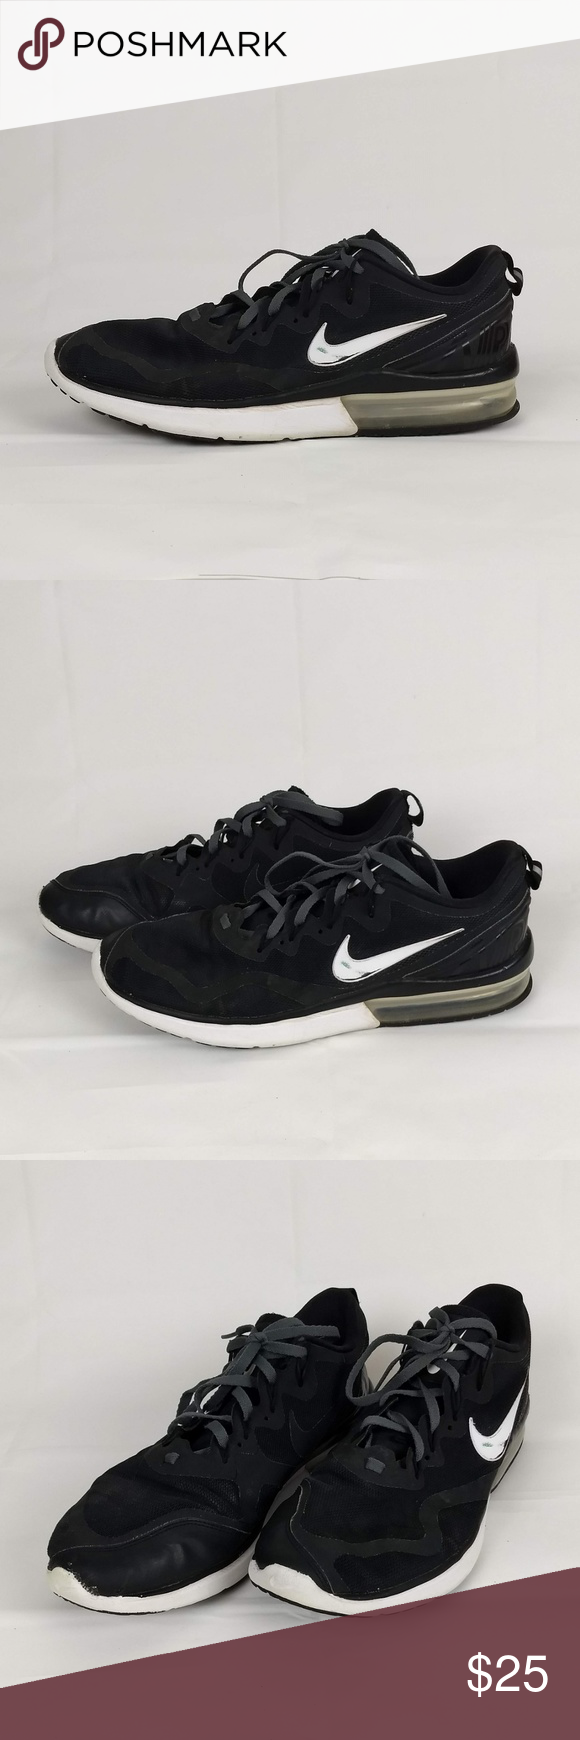 low priced 0d271 42ffc Nike Air Max Fury Black Men s Running Shoes 12 Nike Air Max Fury Black  Men s Running Shoes Model  AA5739-001 US Mens Size 12 UK 11 EUR 46  Condition  ...